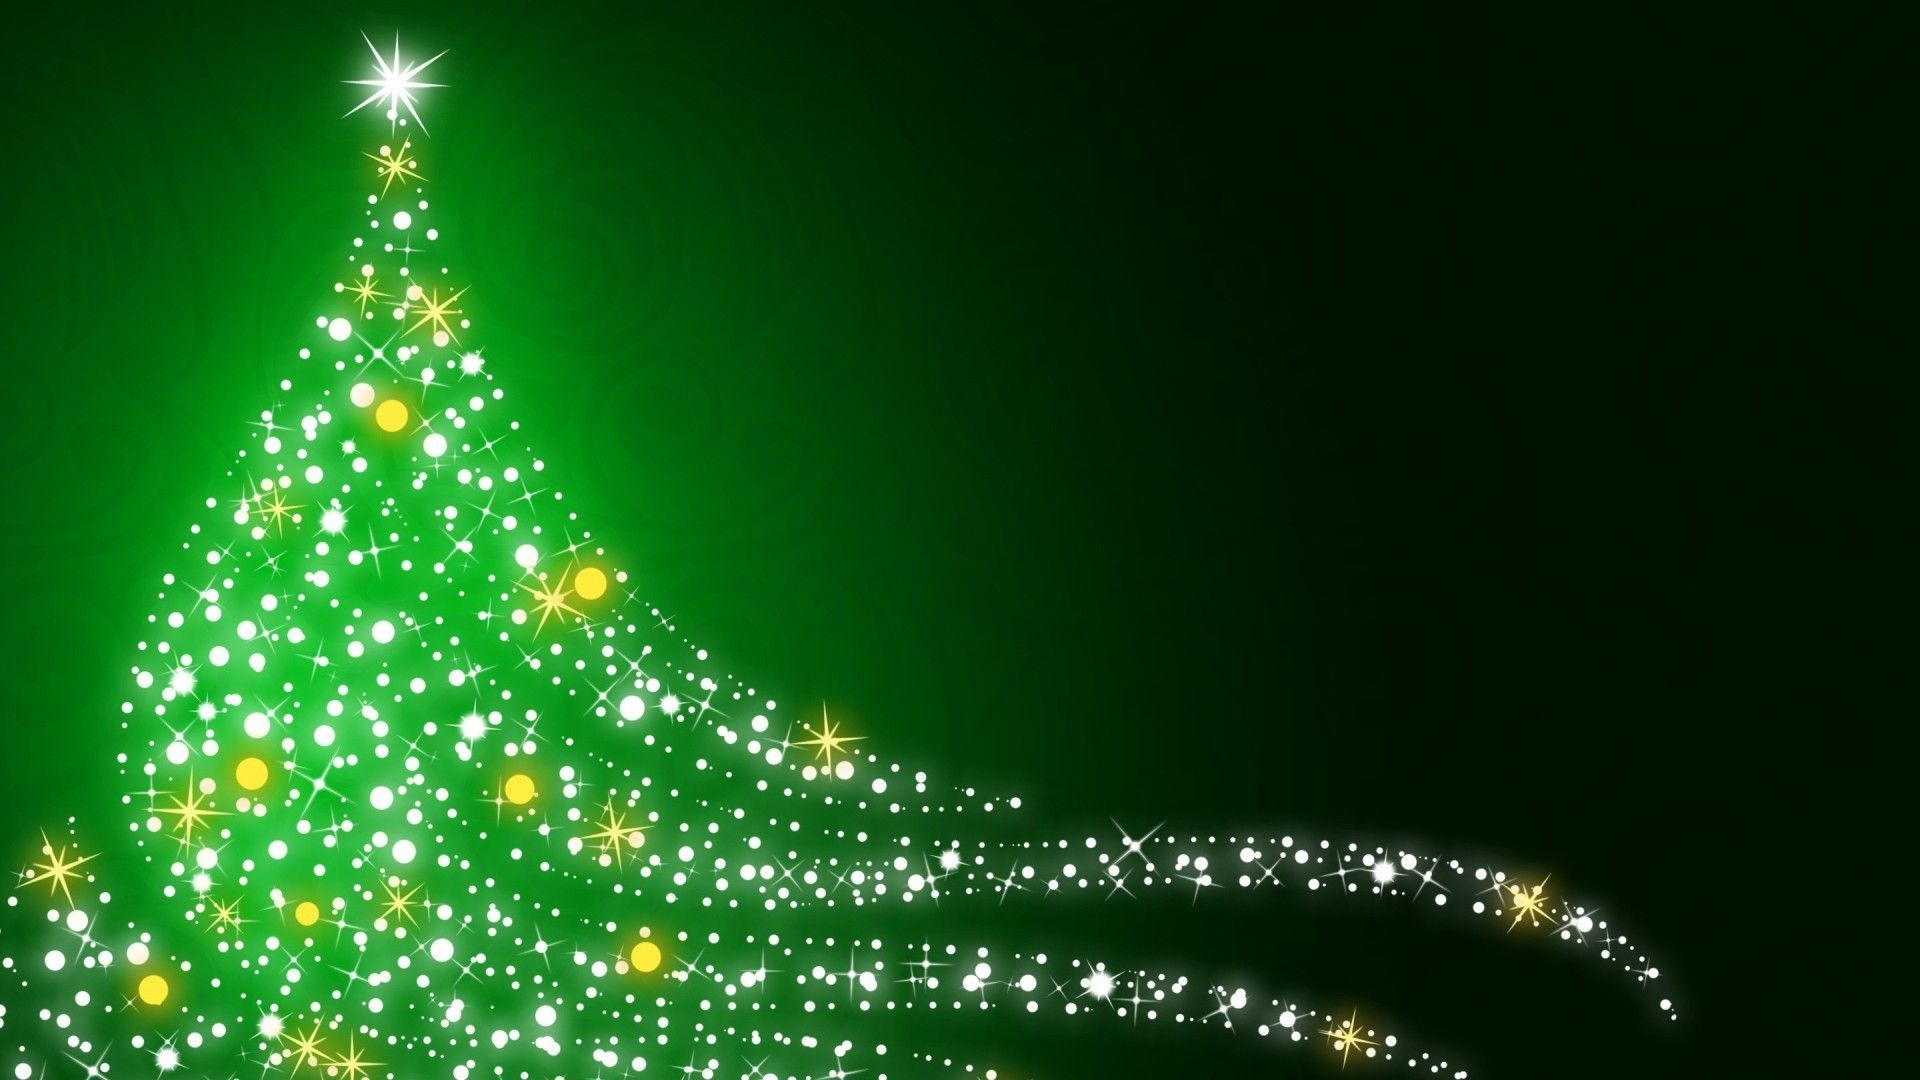 Green Christmas computer wallpaper